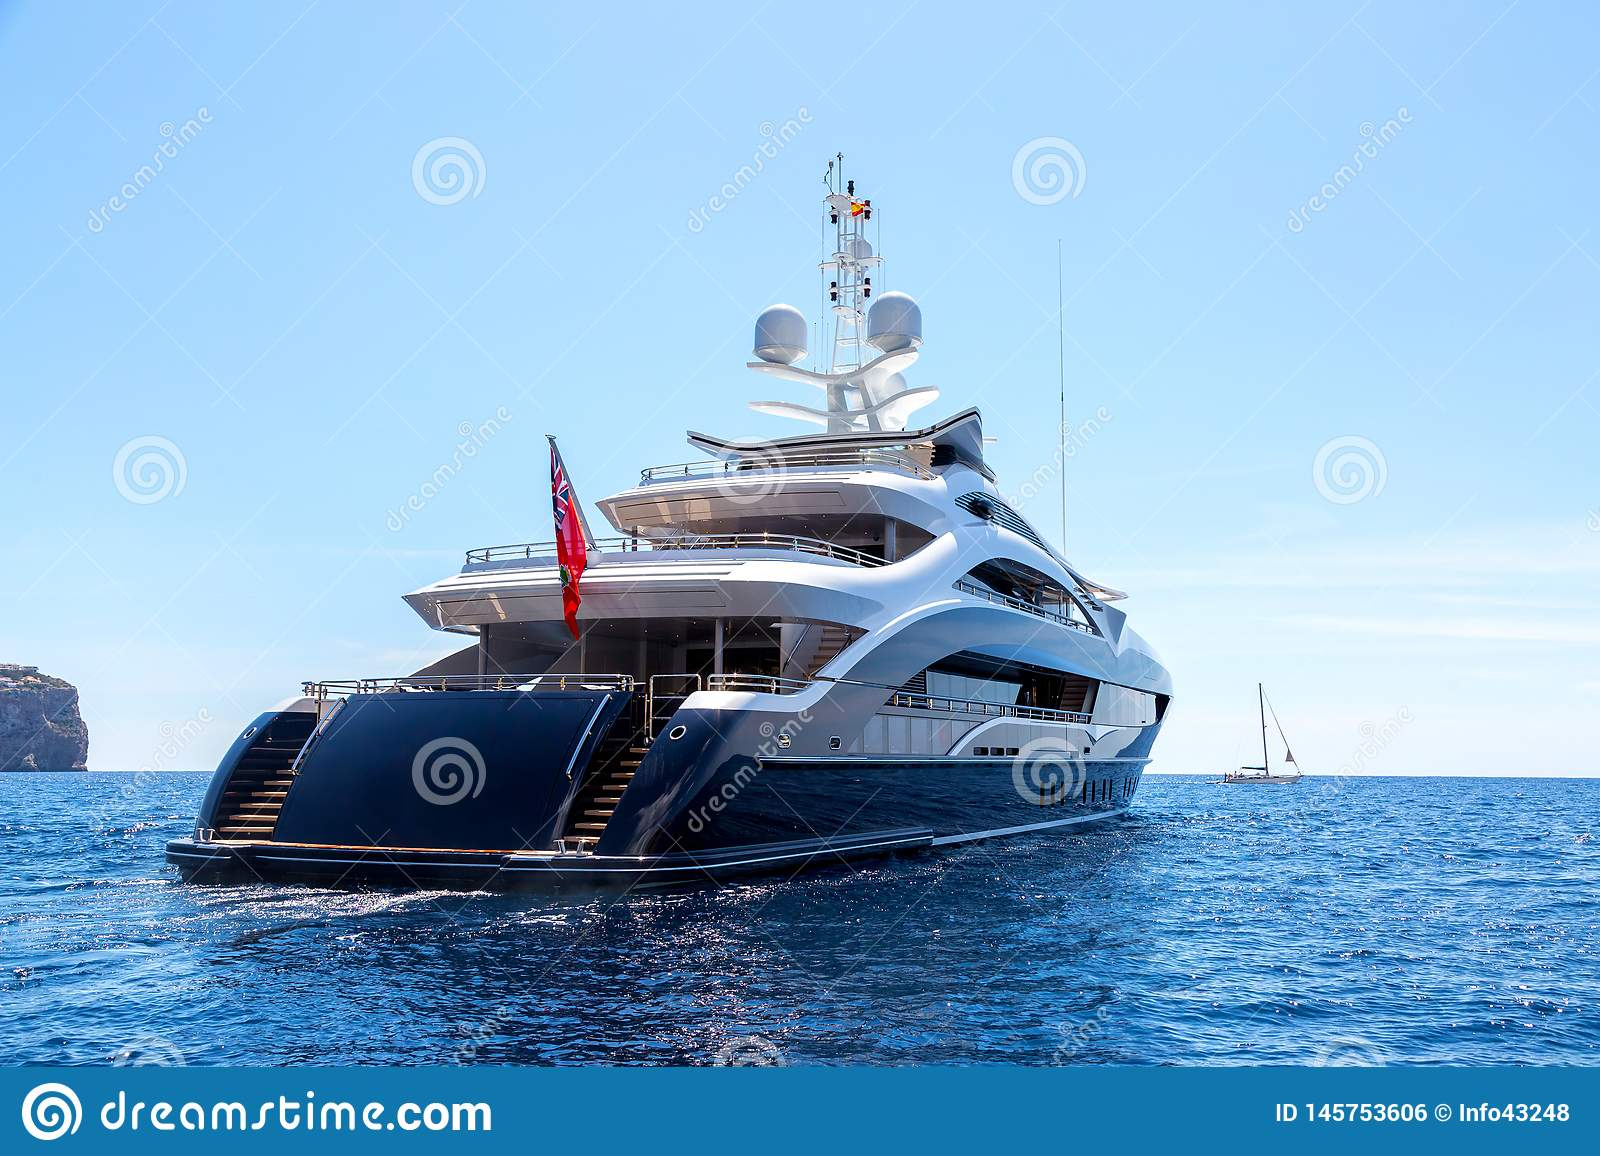 Luxury motor yacht, rear view, sailing on the sea